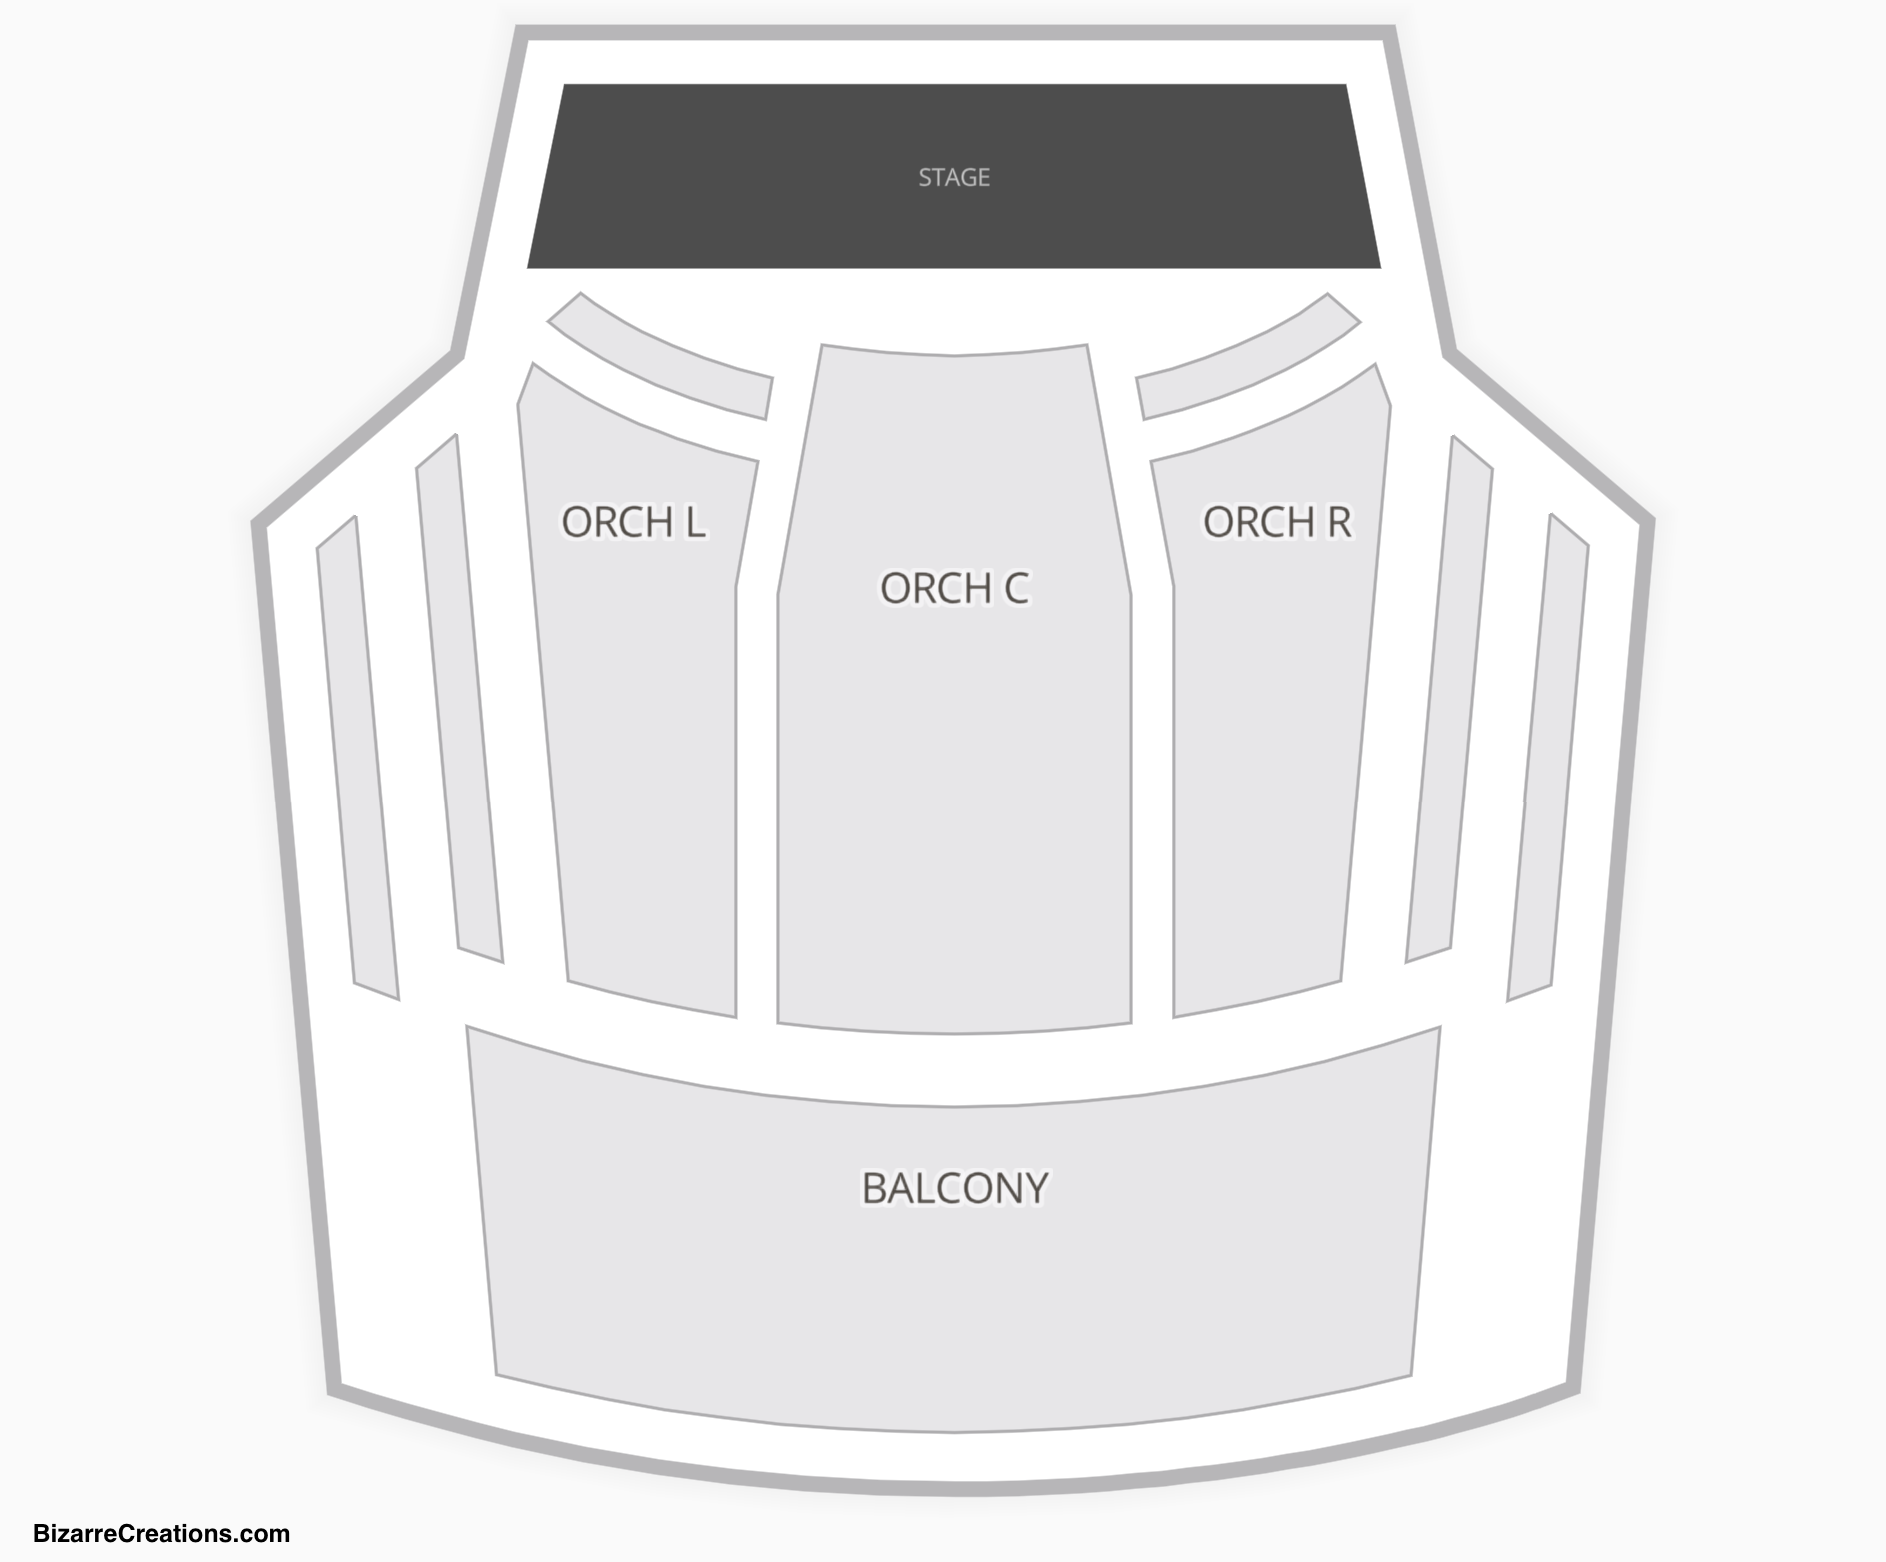 New Jersey Performing Arts Center Seating Chart Seating Charts